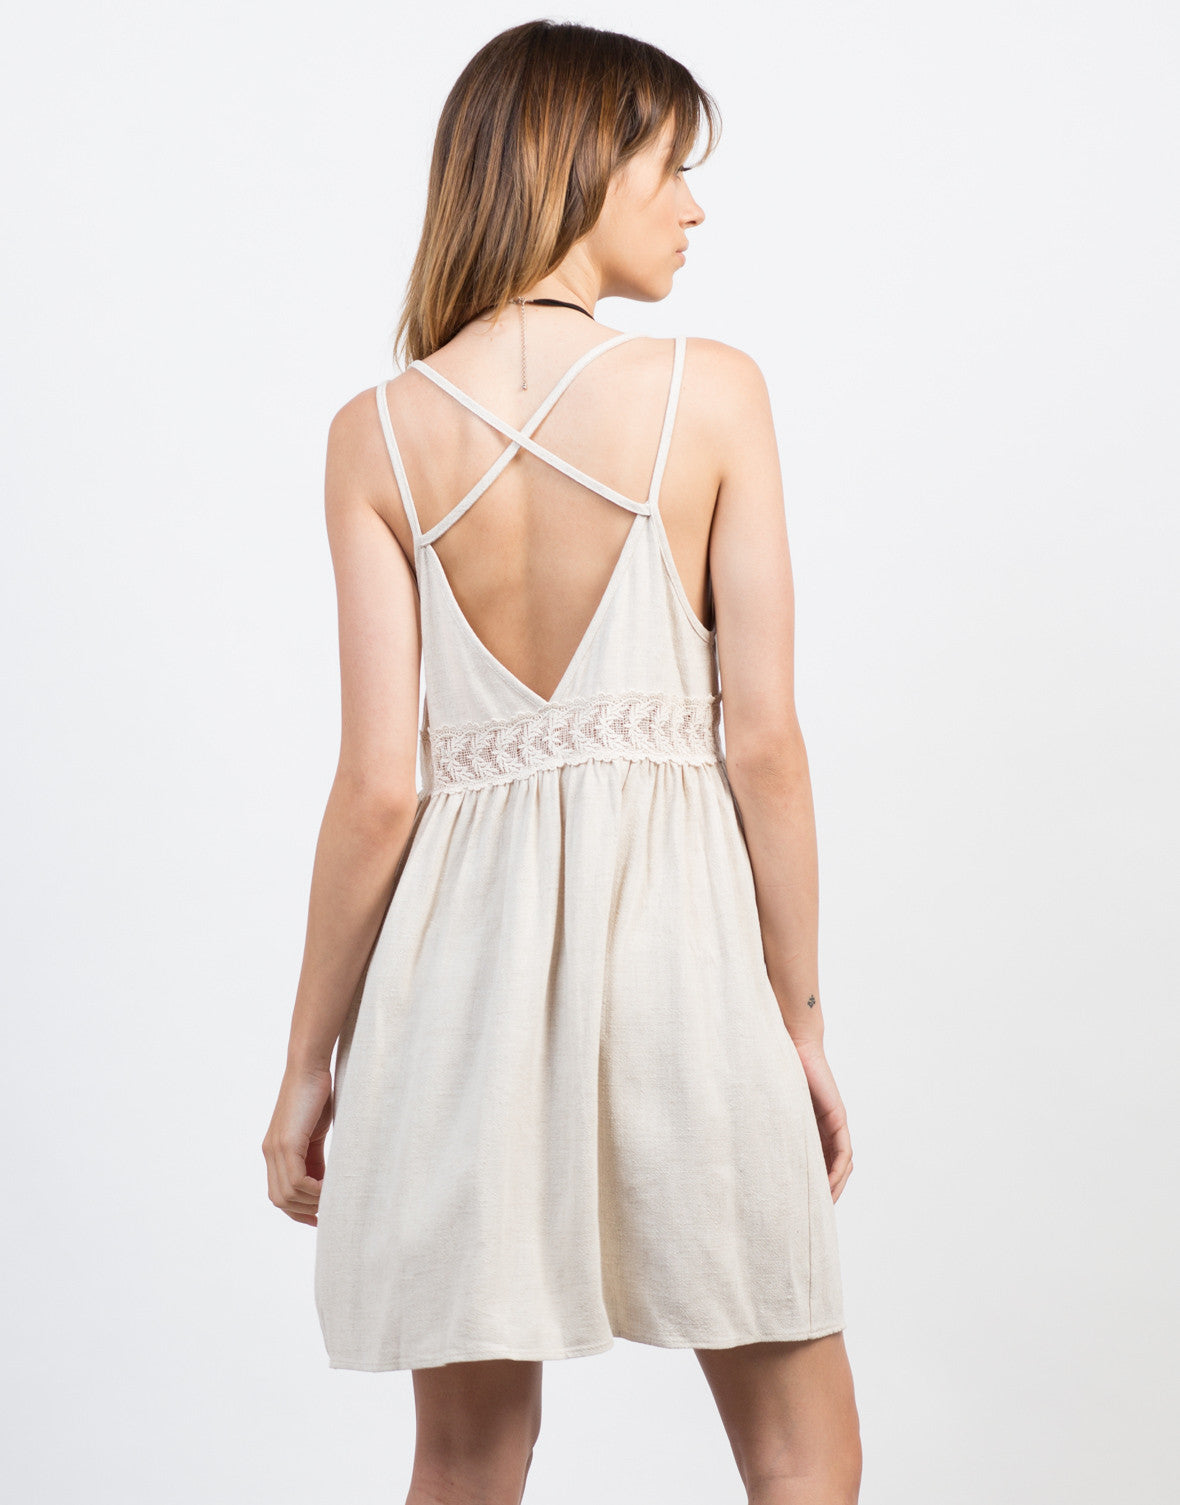 Back View of Linen Crochet Dress